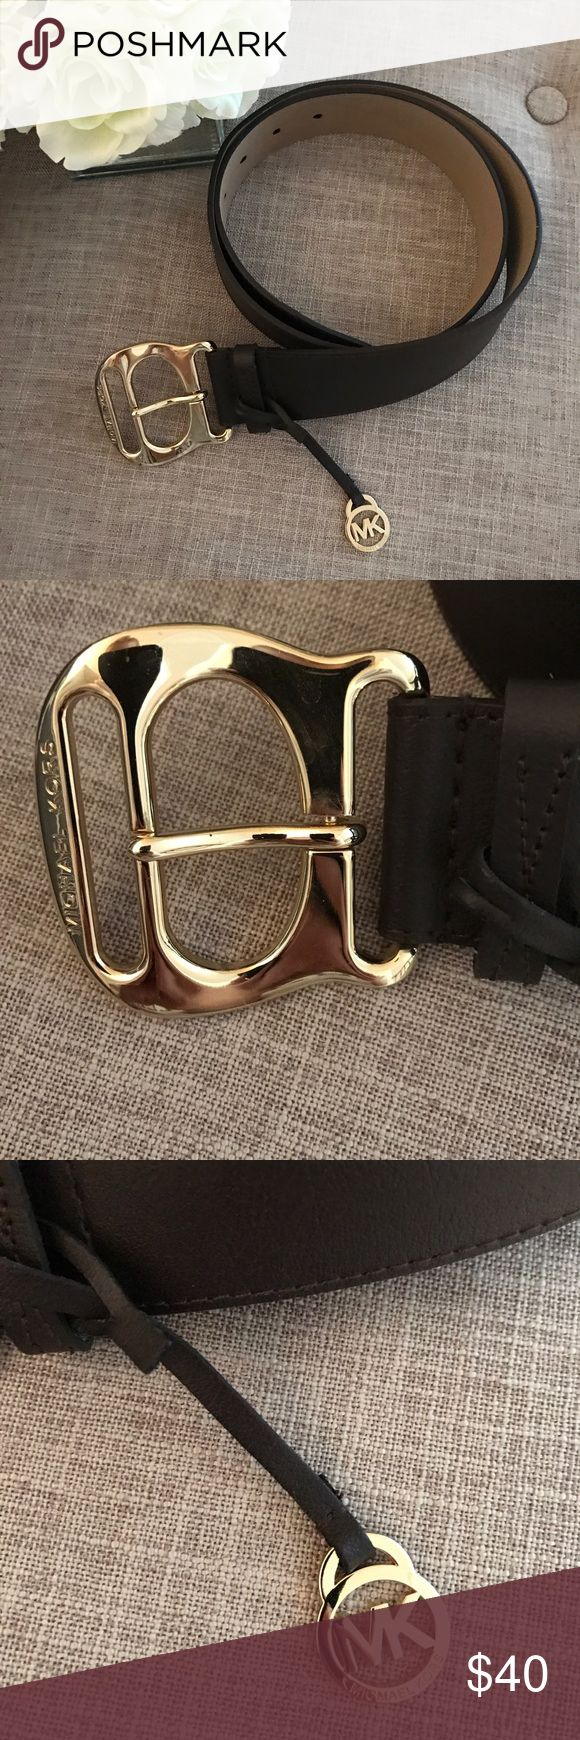 MK brown and gold leather belt Worn once. Dark chocolate brown with gold buckle and charm. No wear or scratches. In perfect condition! From a pet free and smoke free home. Michael Kors Accessories Belts